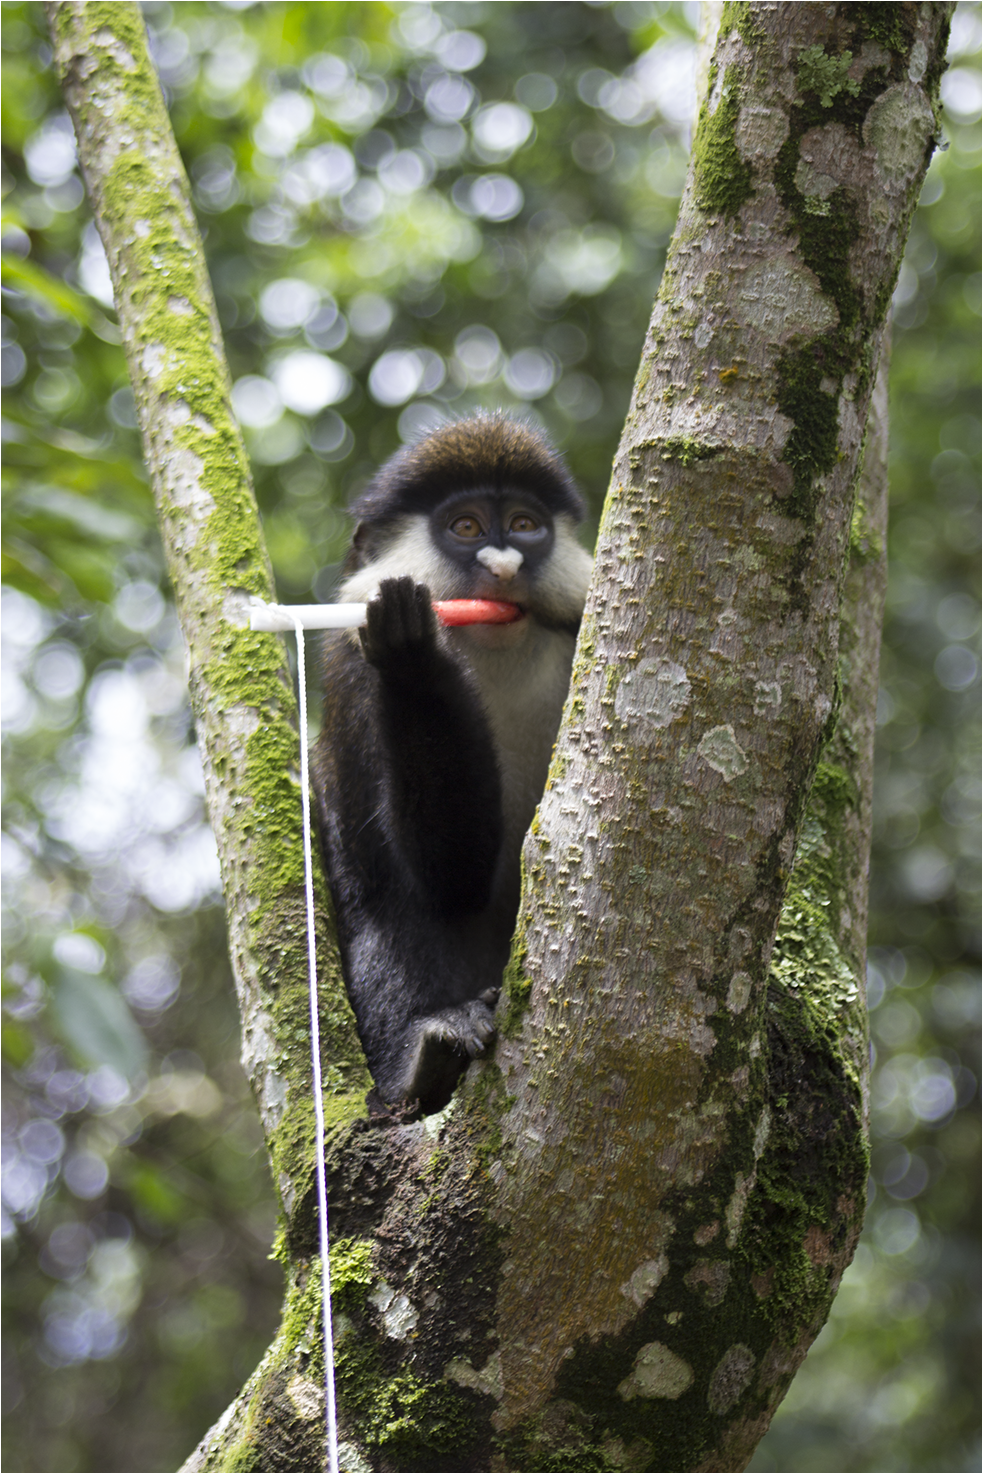 Red-tailed guenon in Bwindi Impenetrable Forest, Uganda. (T. Smiley Evans/UC Davis)